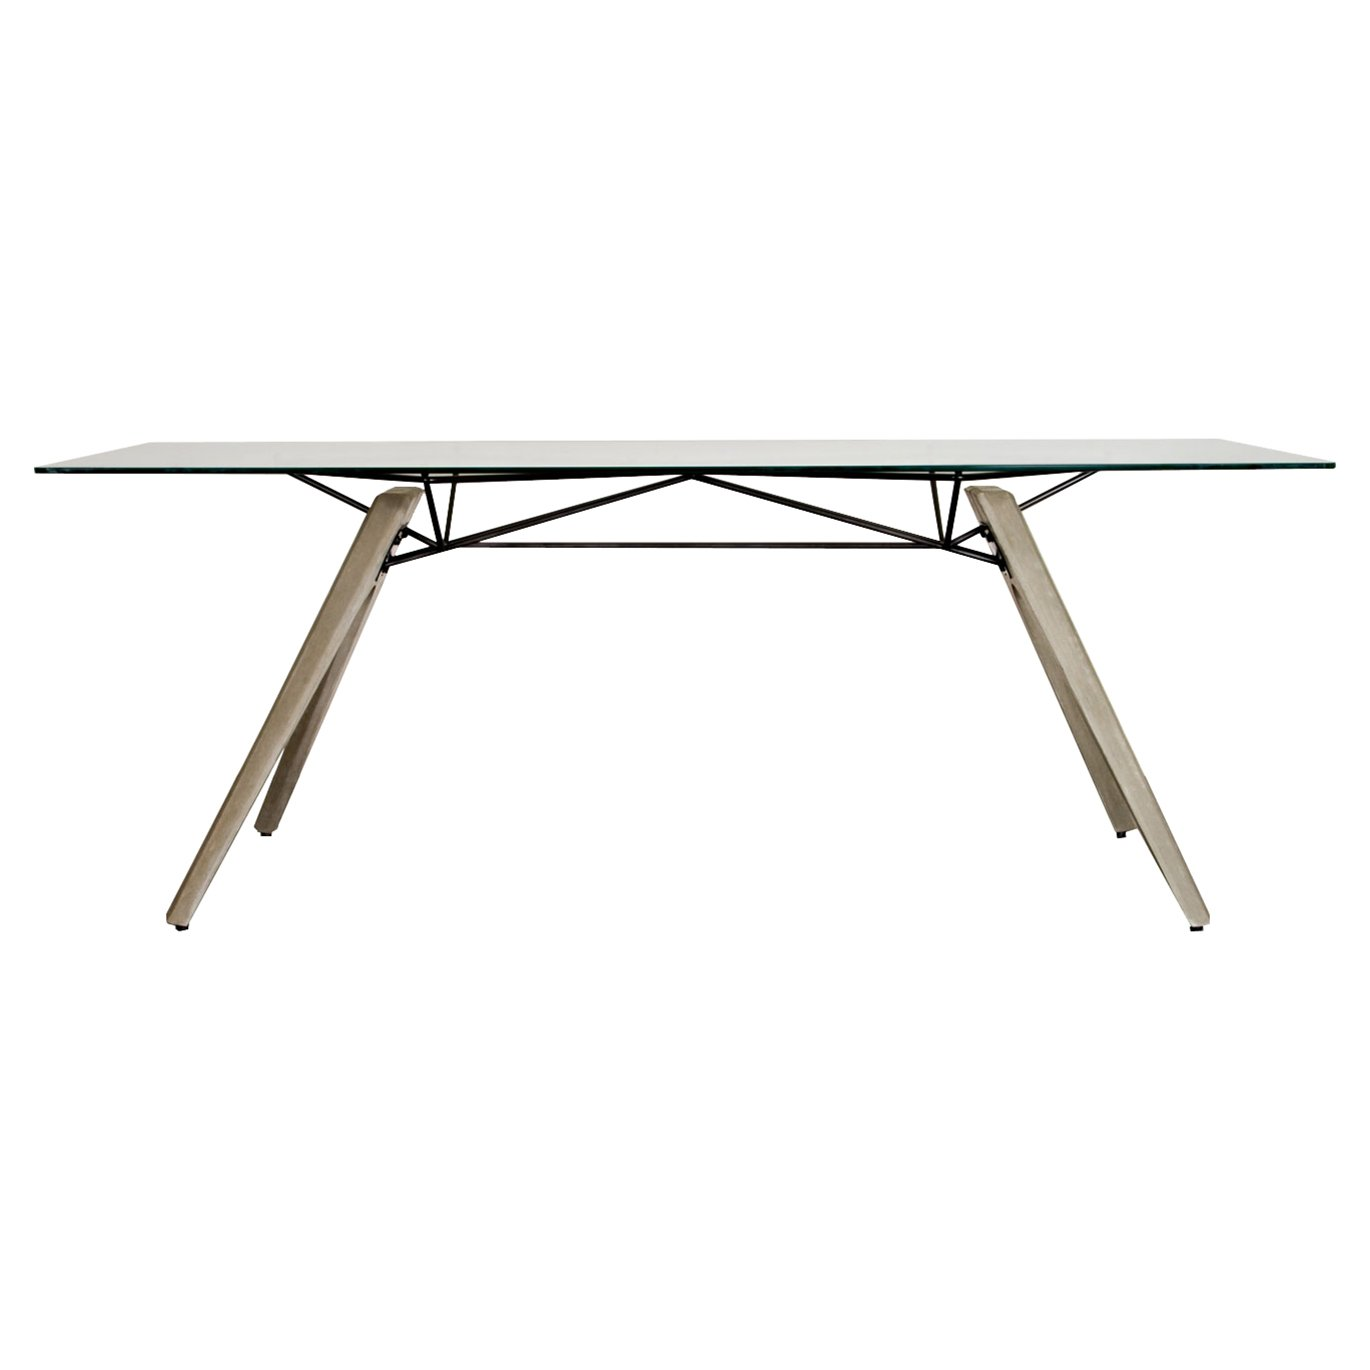 Christian Industrial Loft Glass Concrete Dining Table - 94W by Kathy Kuo Home